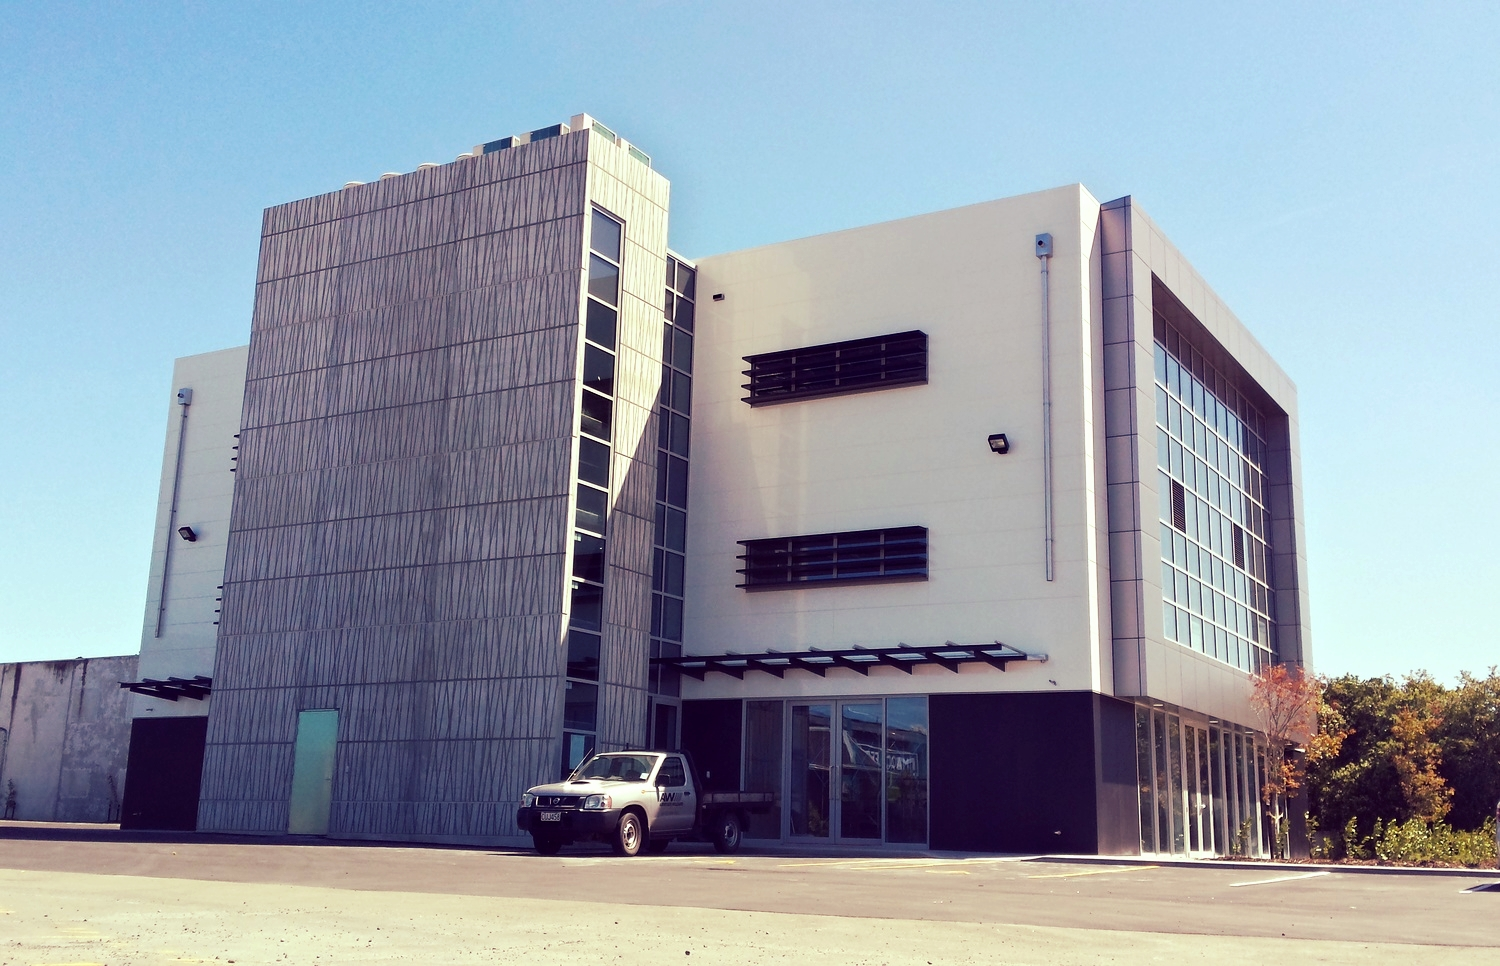 567 Wairakei Road Offices, Christchurch